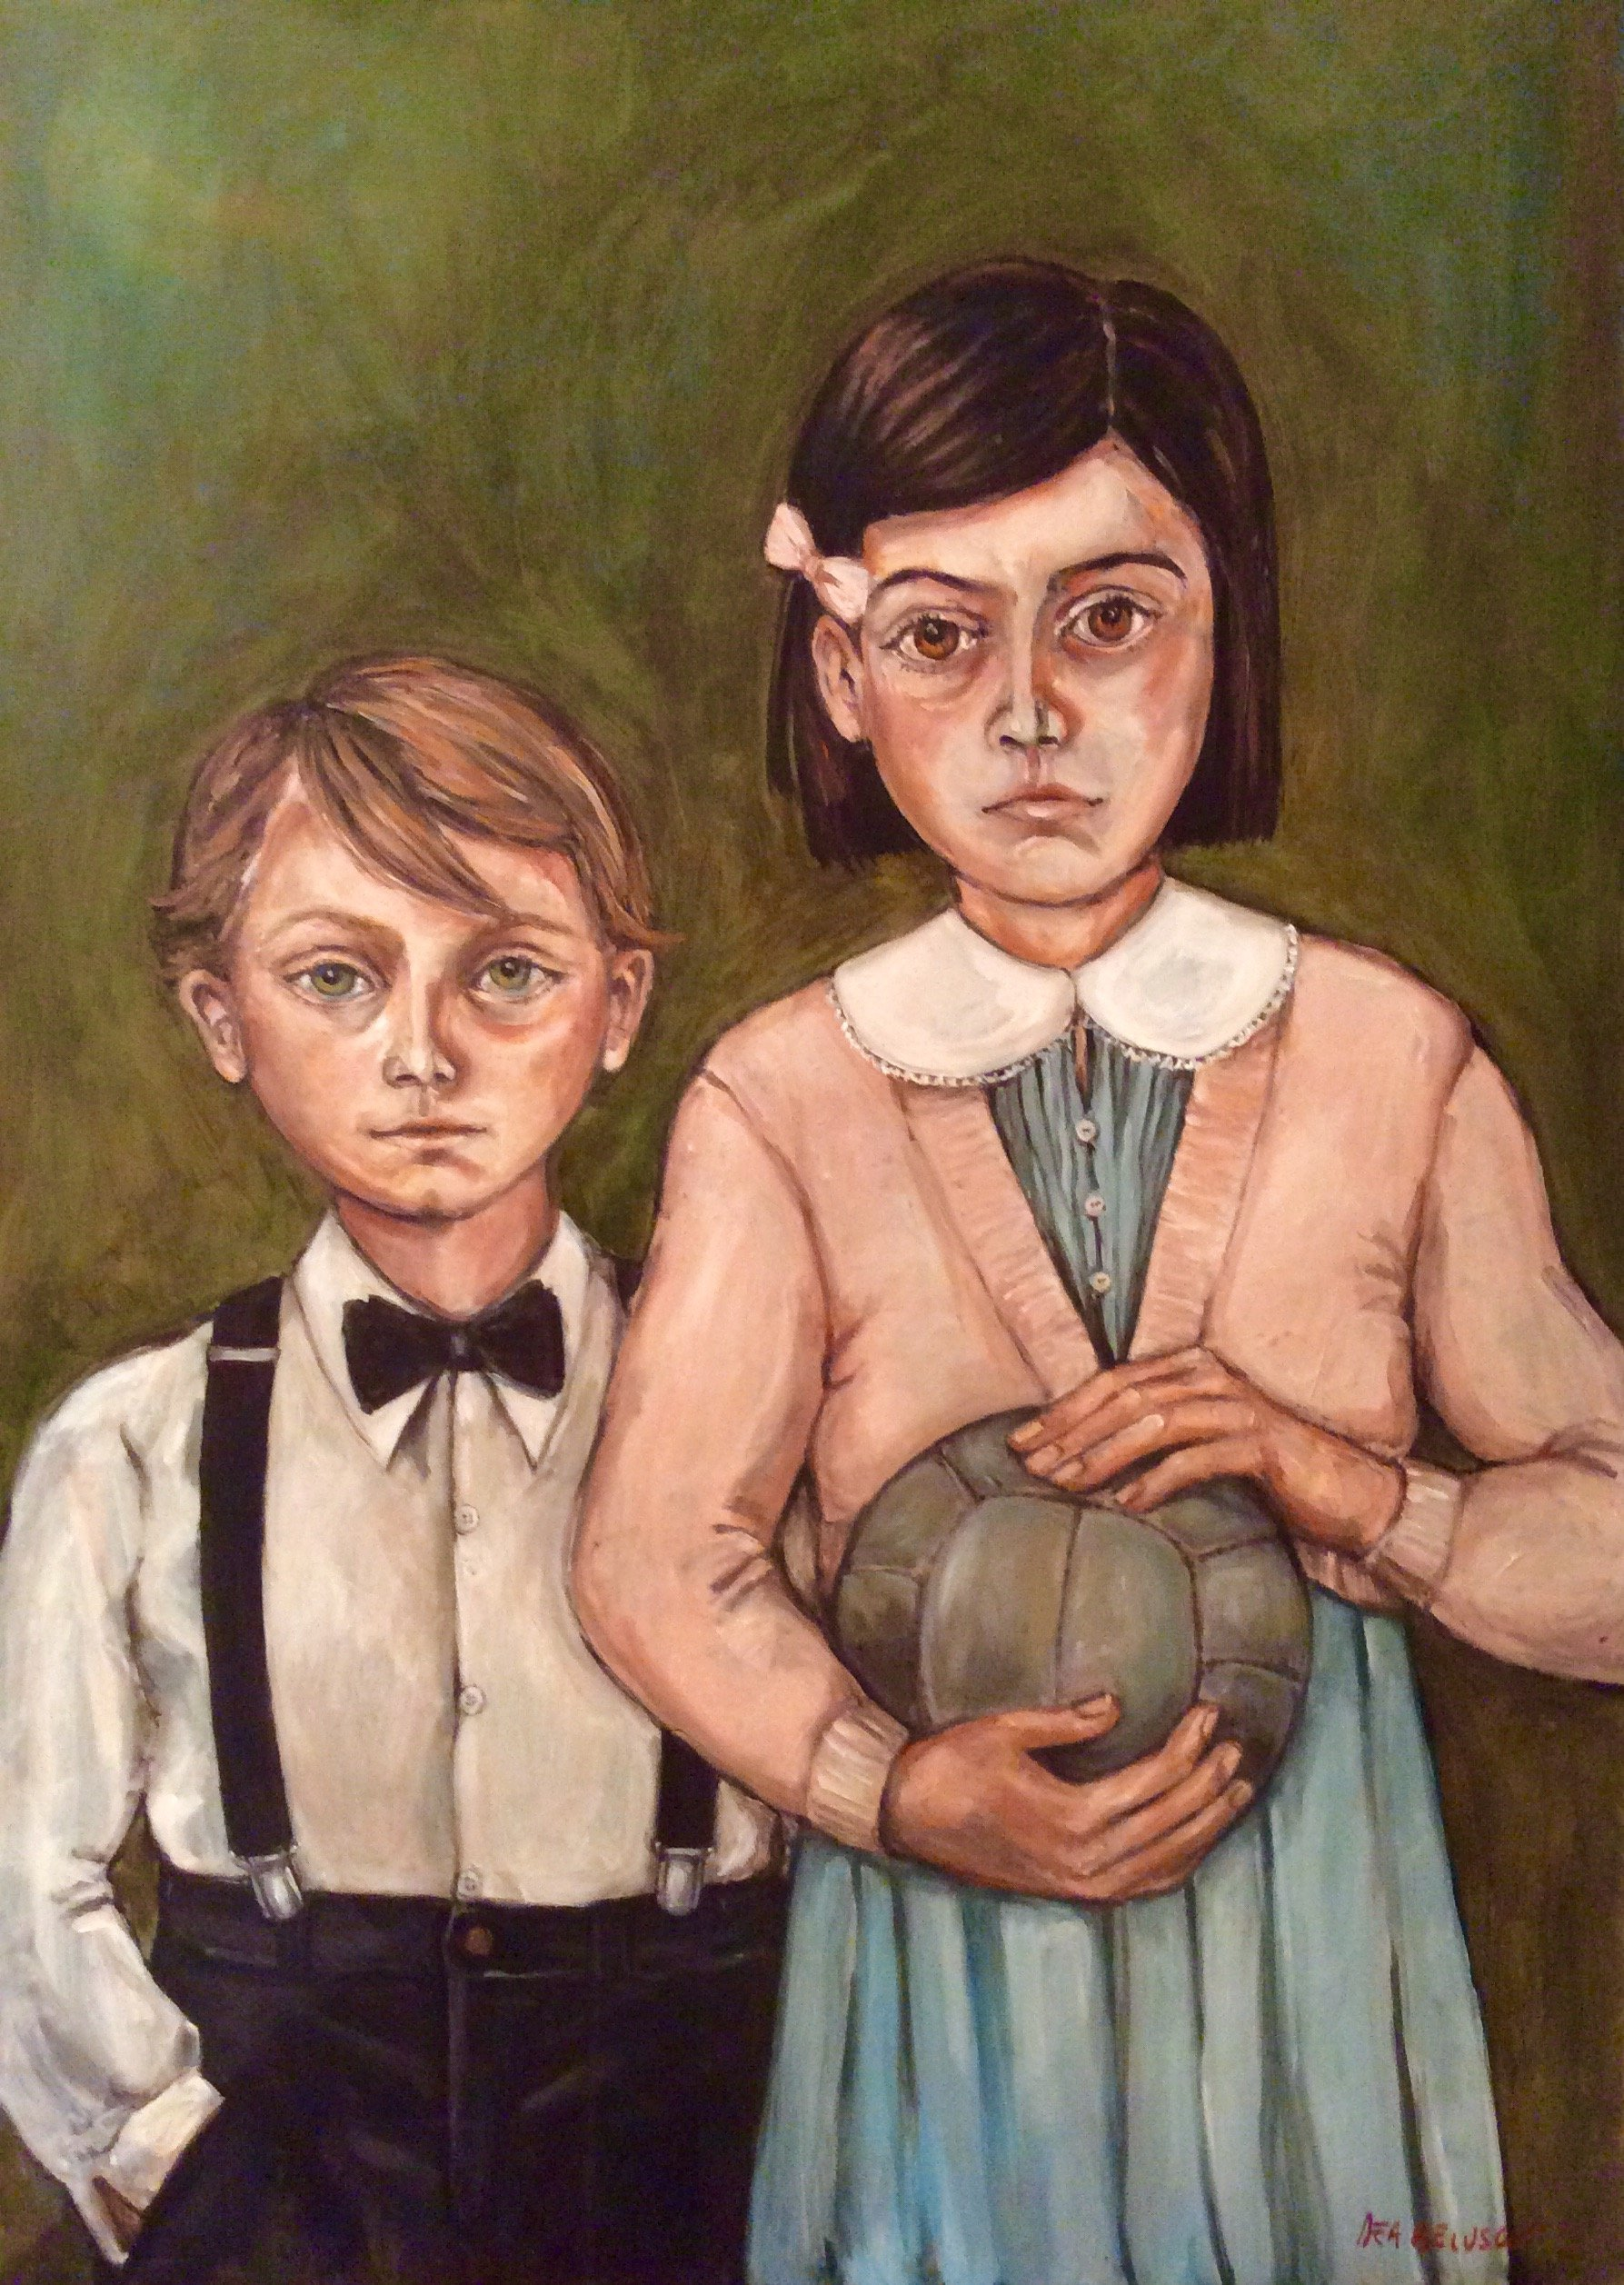 Brothers - oil on canvas - Contact for price